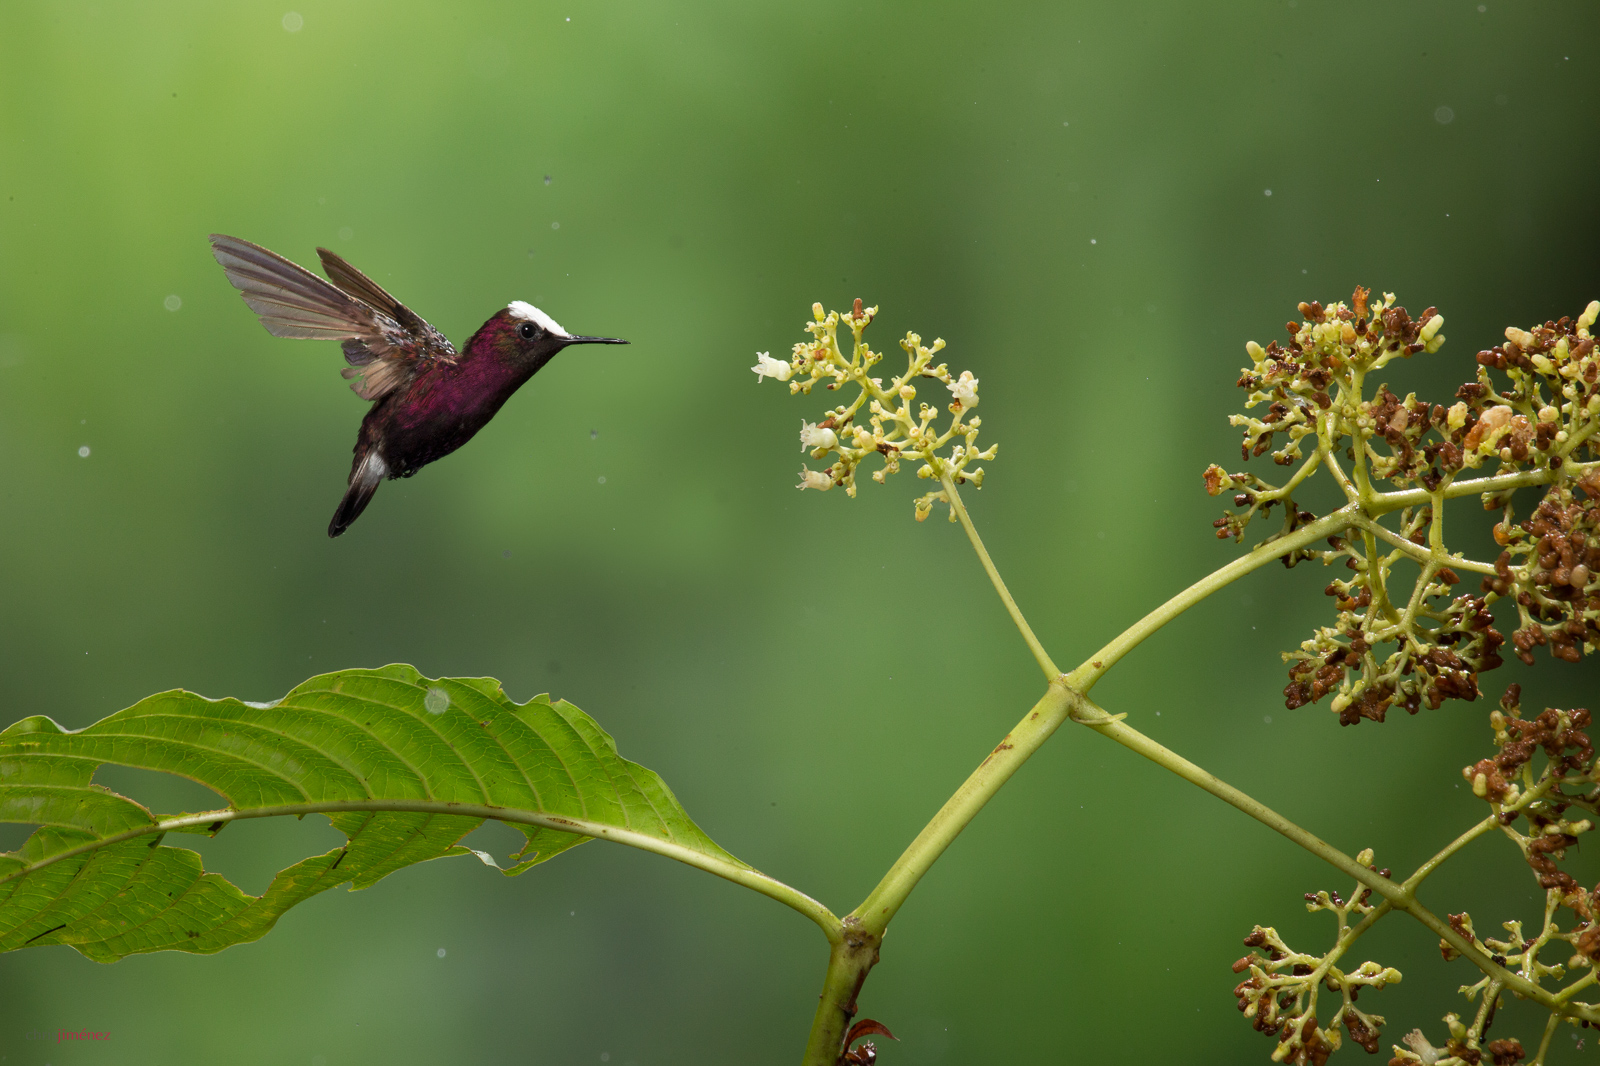 Snowcap (Microchera albocoronata) male fedding from flowers in flight at the lowlands of Costa Rica